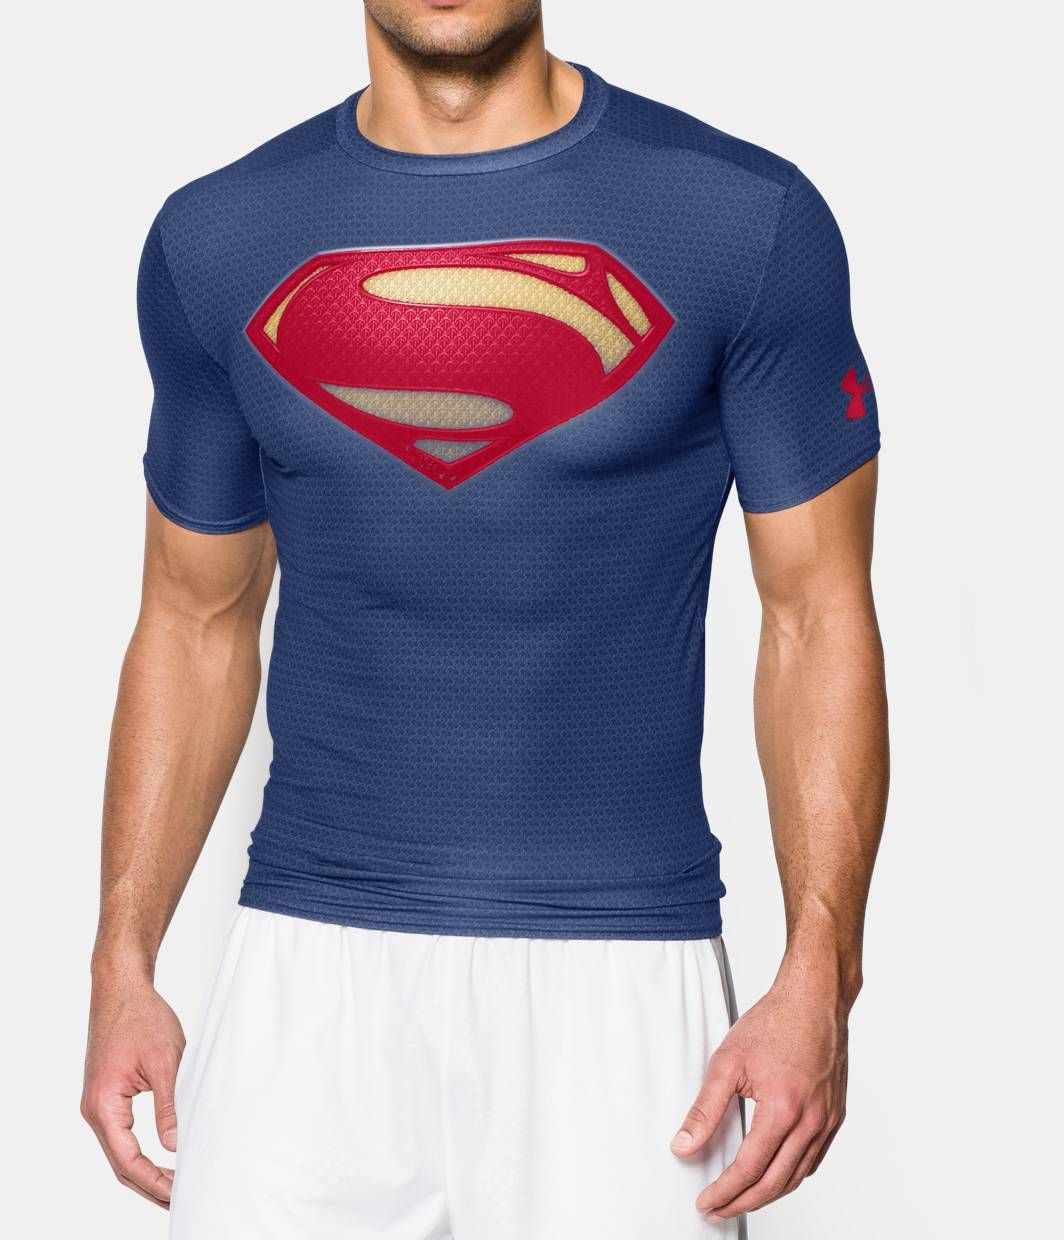 Under Armour Alter Ego #Superman compression t-shirt